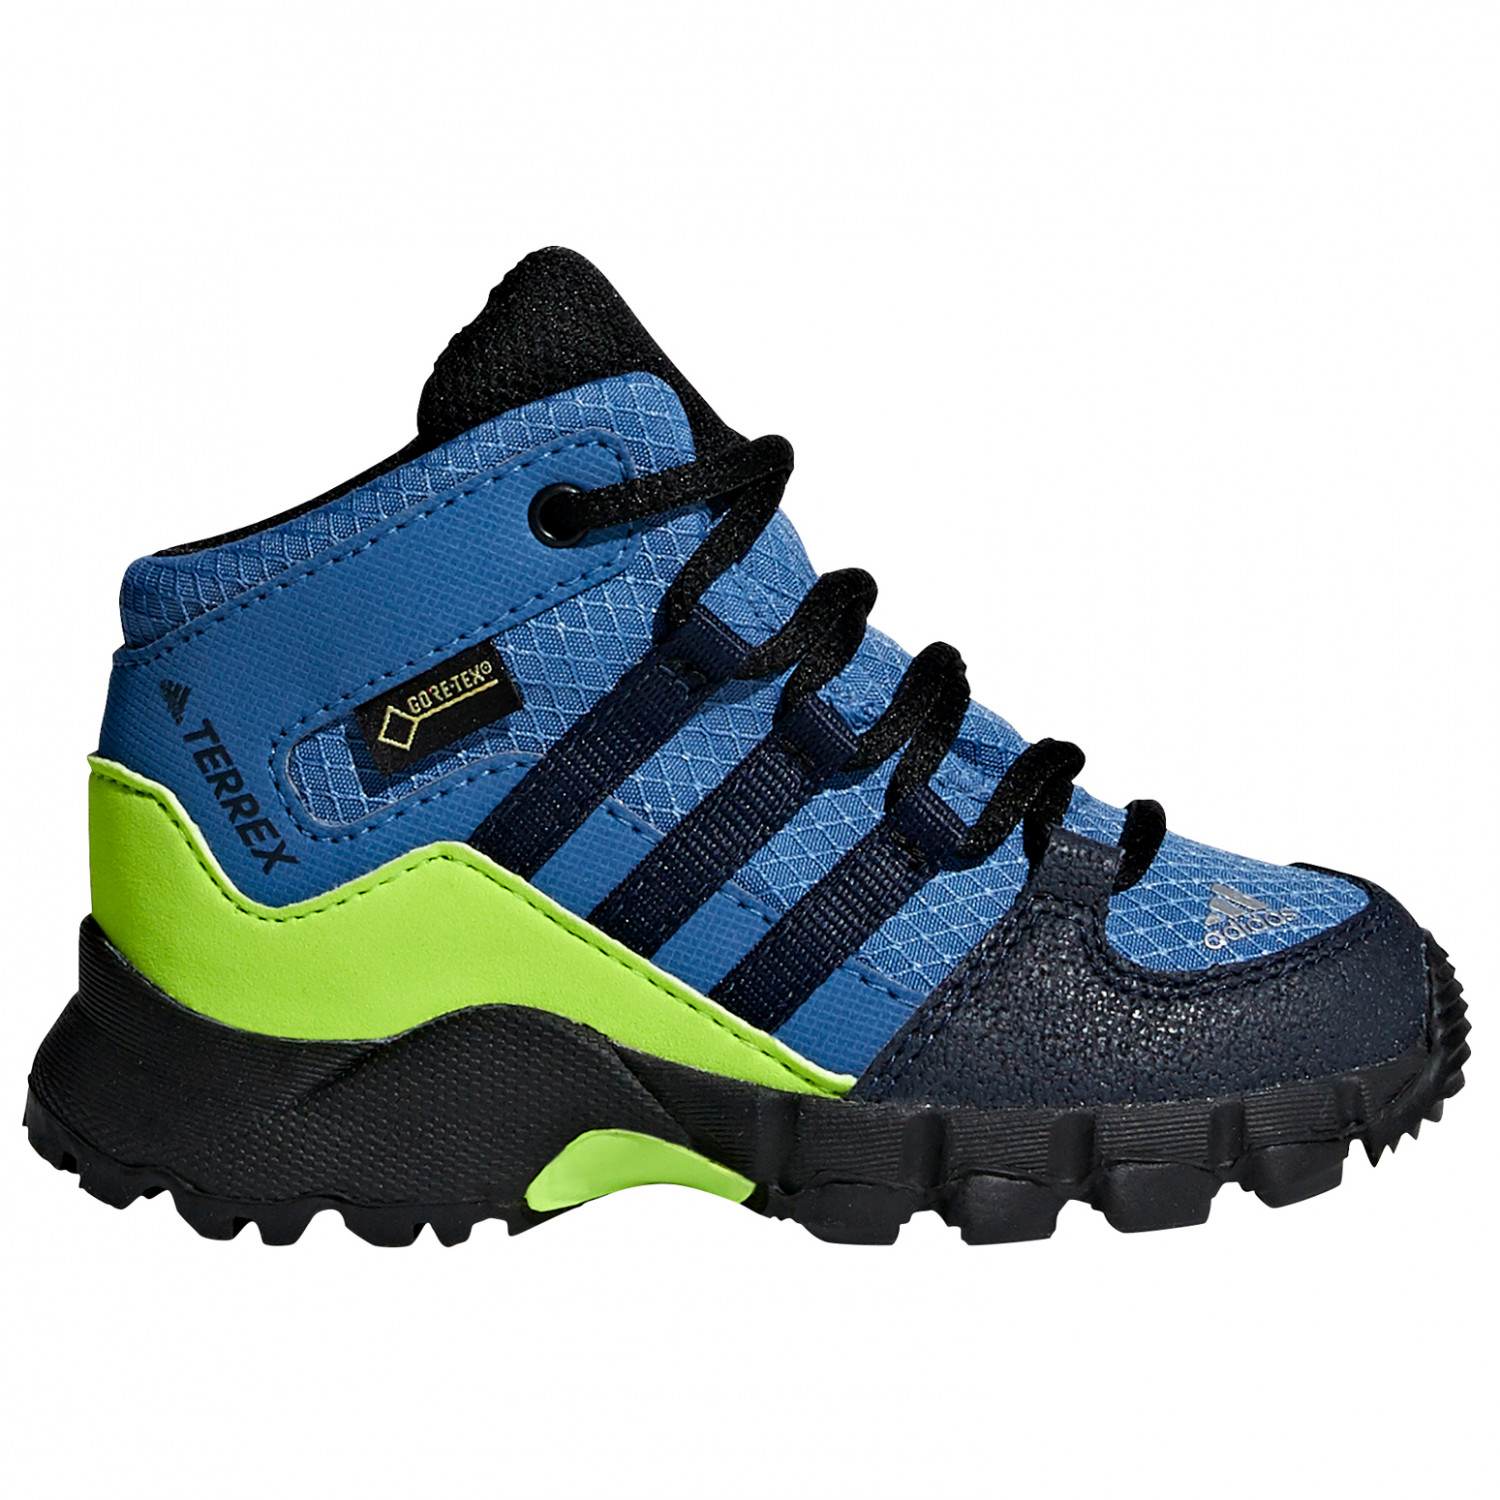 Blue Outdoors – Adidas Terrex Swift R2 Gore Tex Walking Shoes Mens Blue